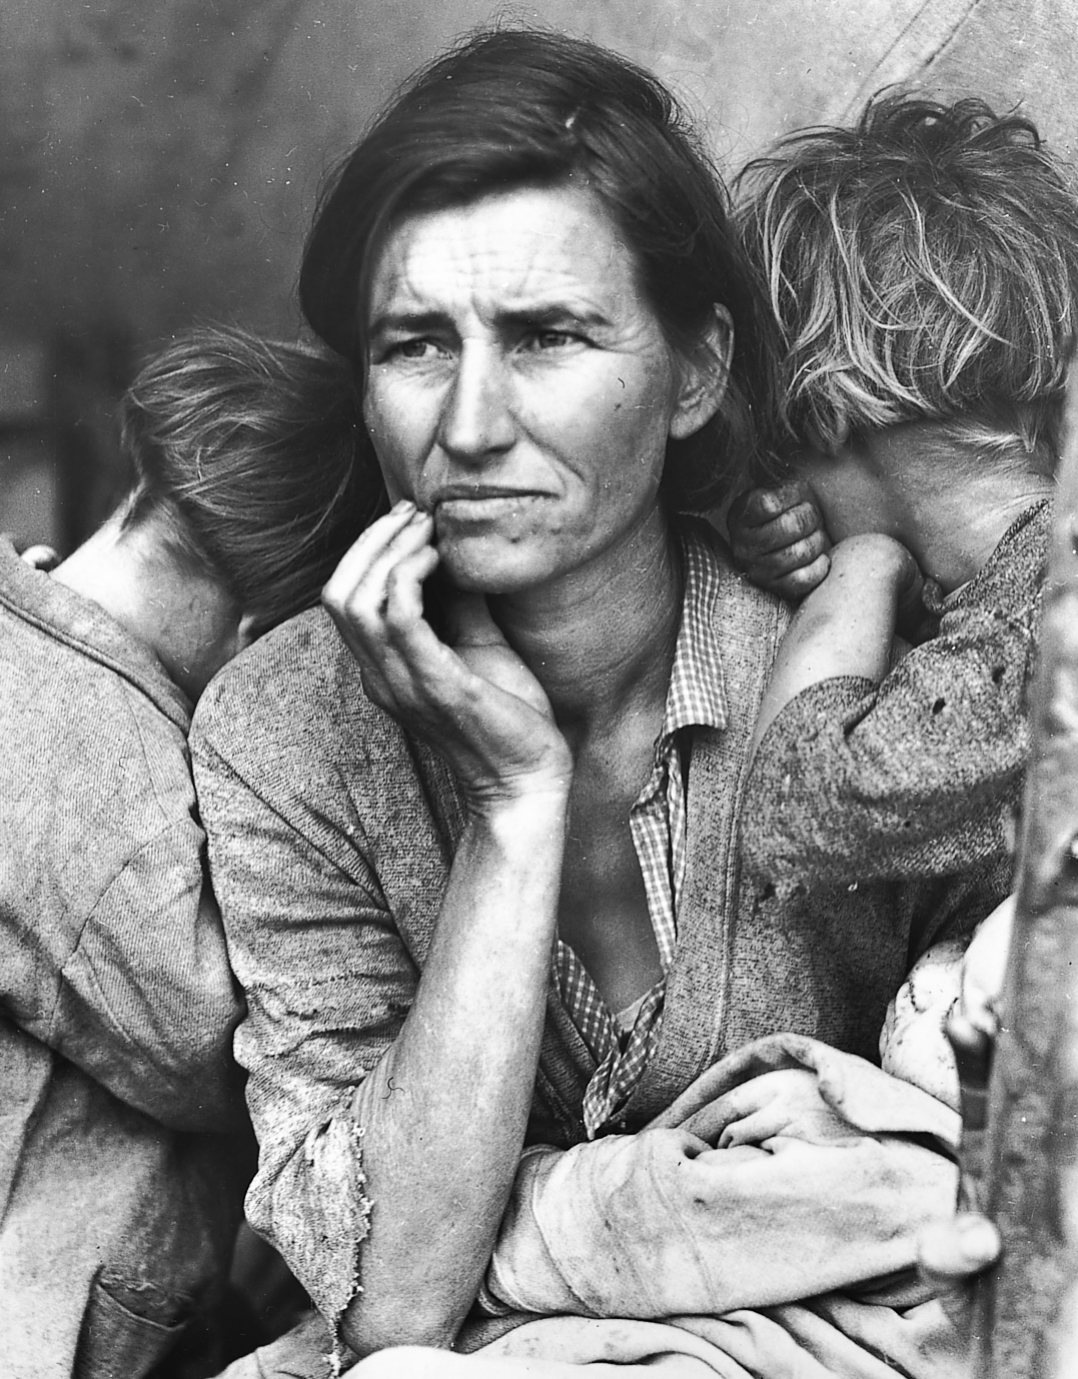 Black and white image of a woman looking into the distance with two children clung to her.